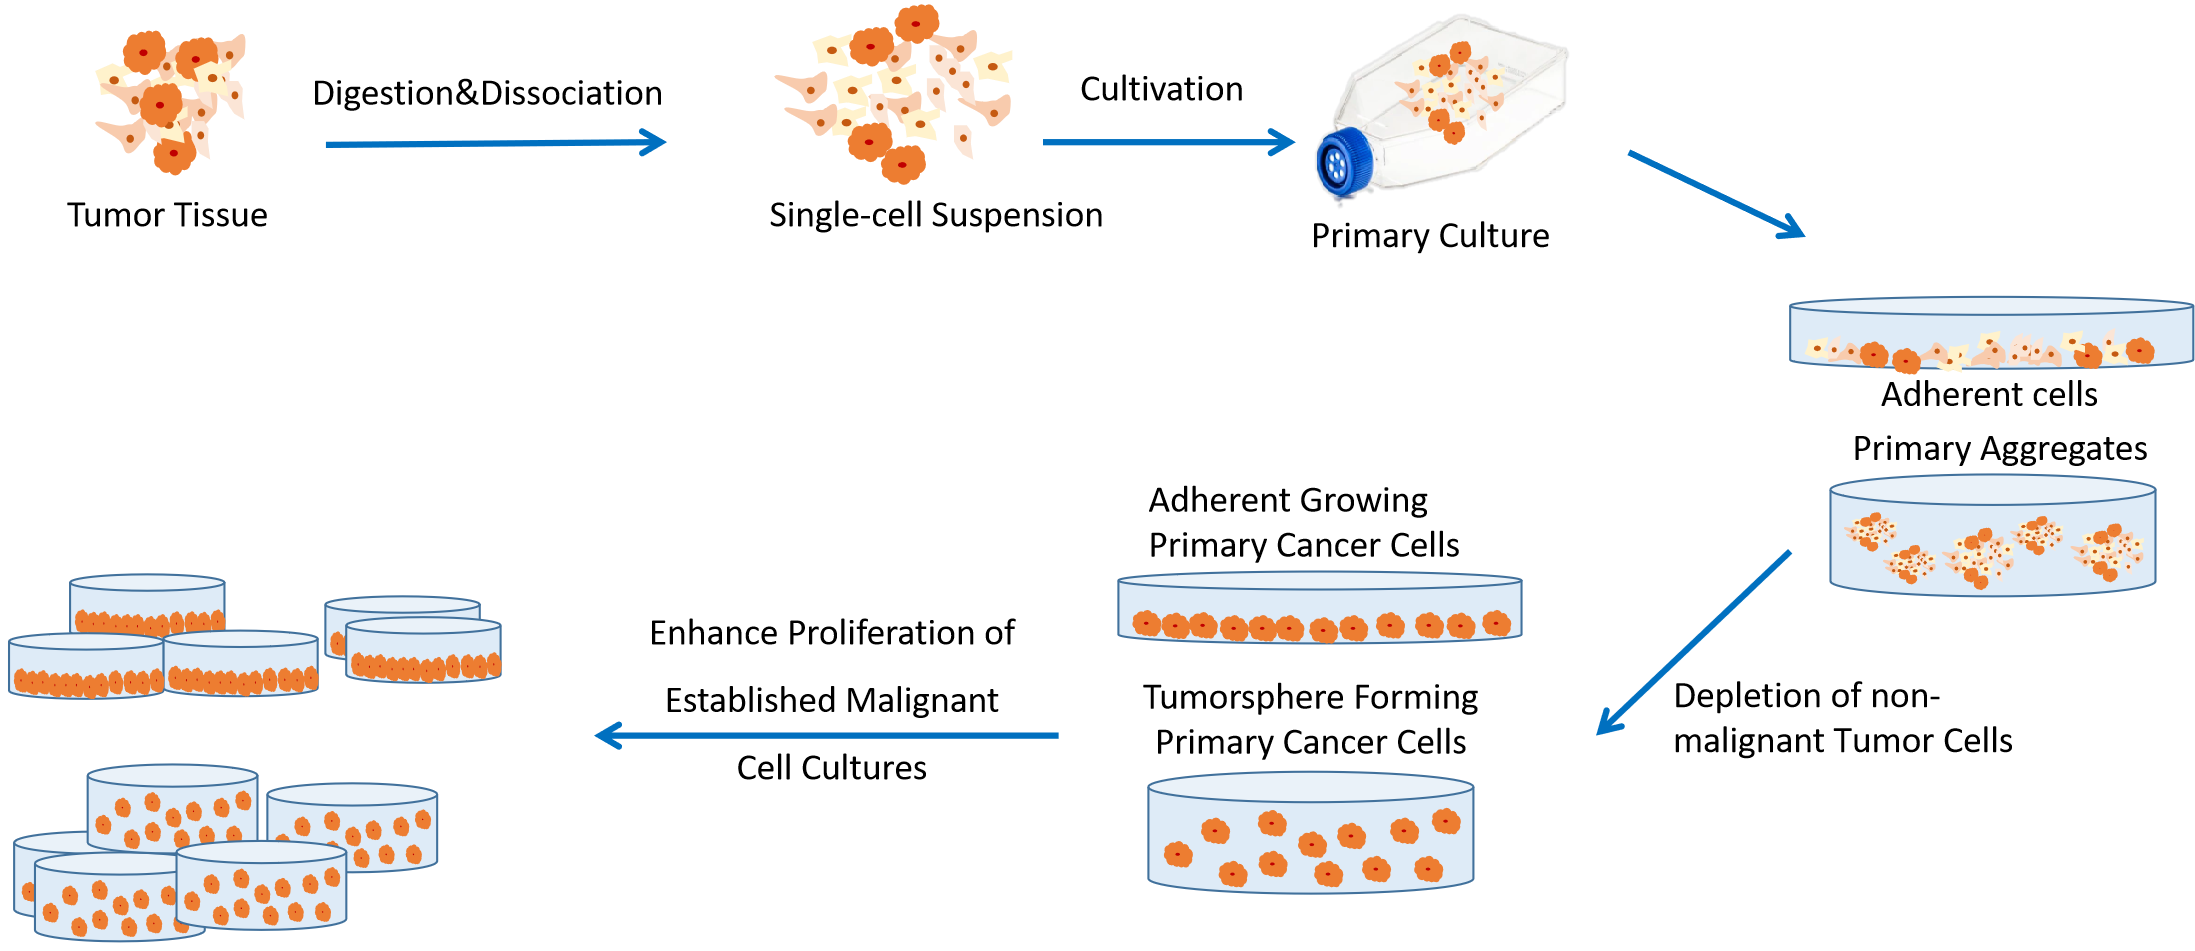 Service flow chart for isolation and culture of primary tumor cells.